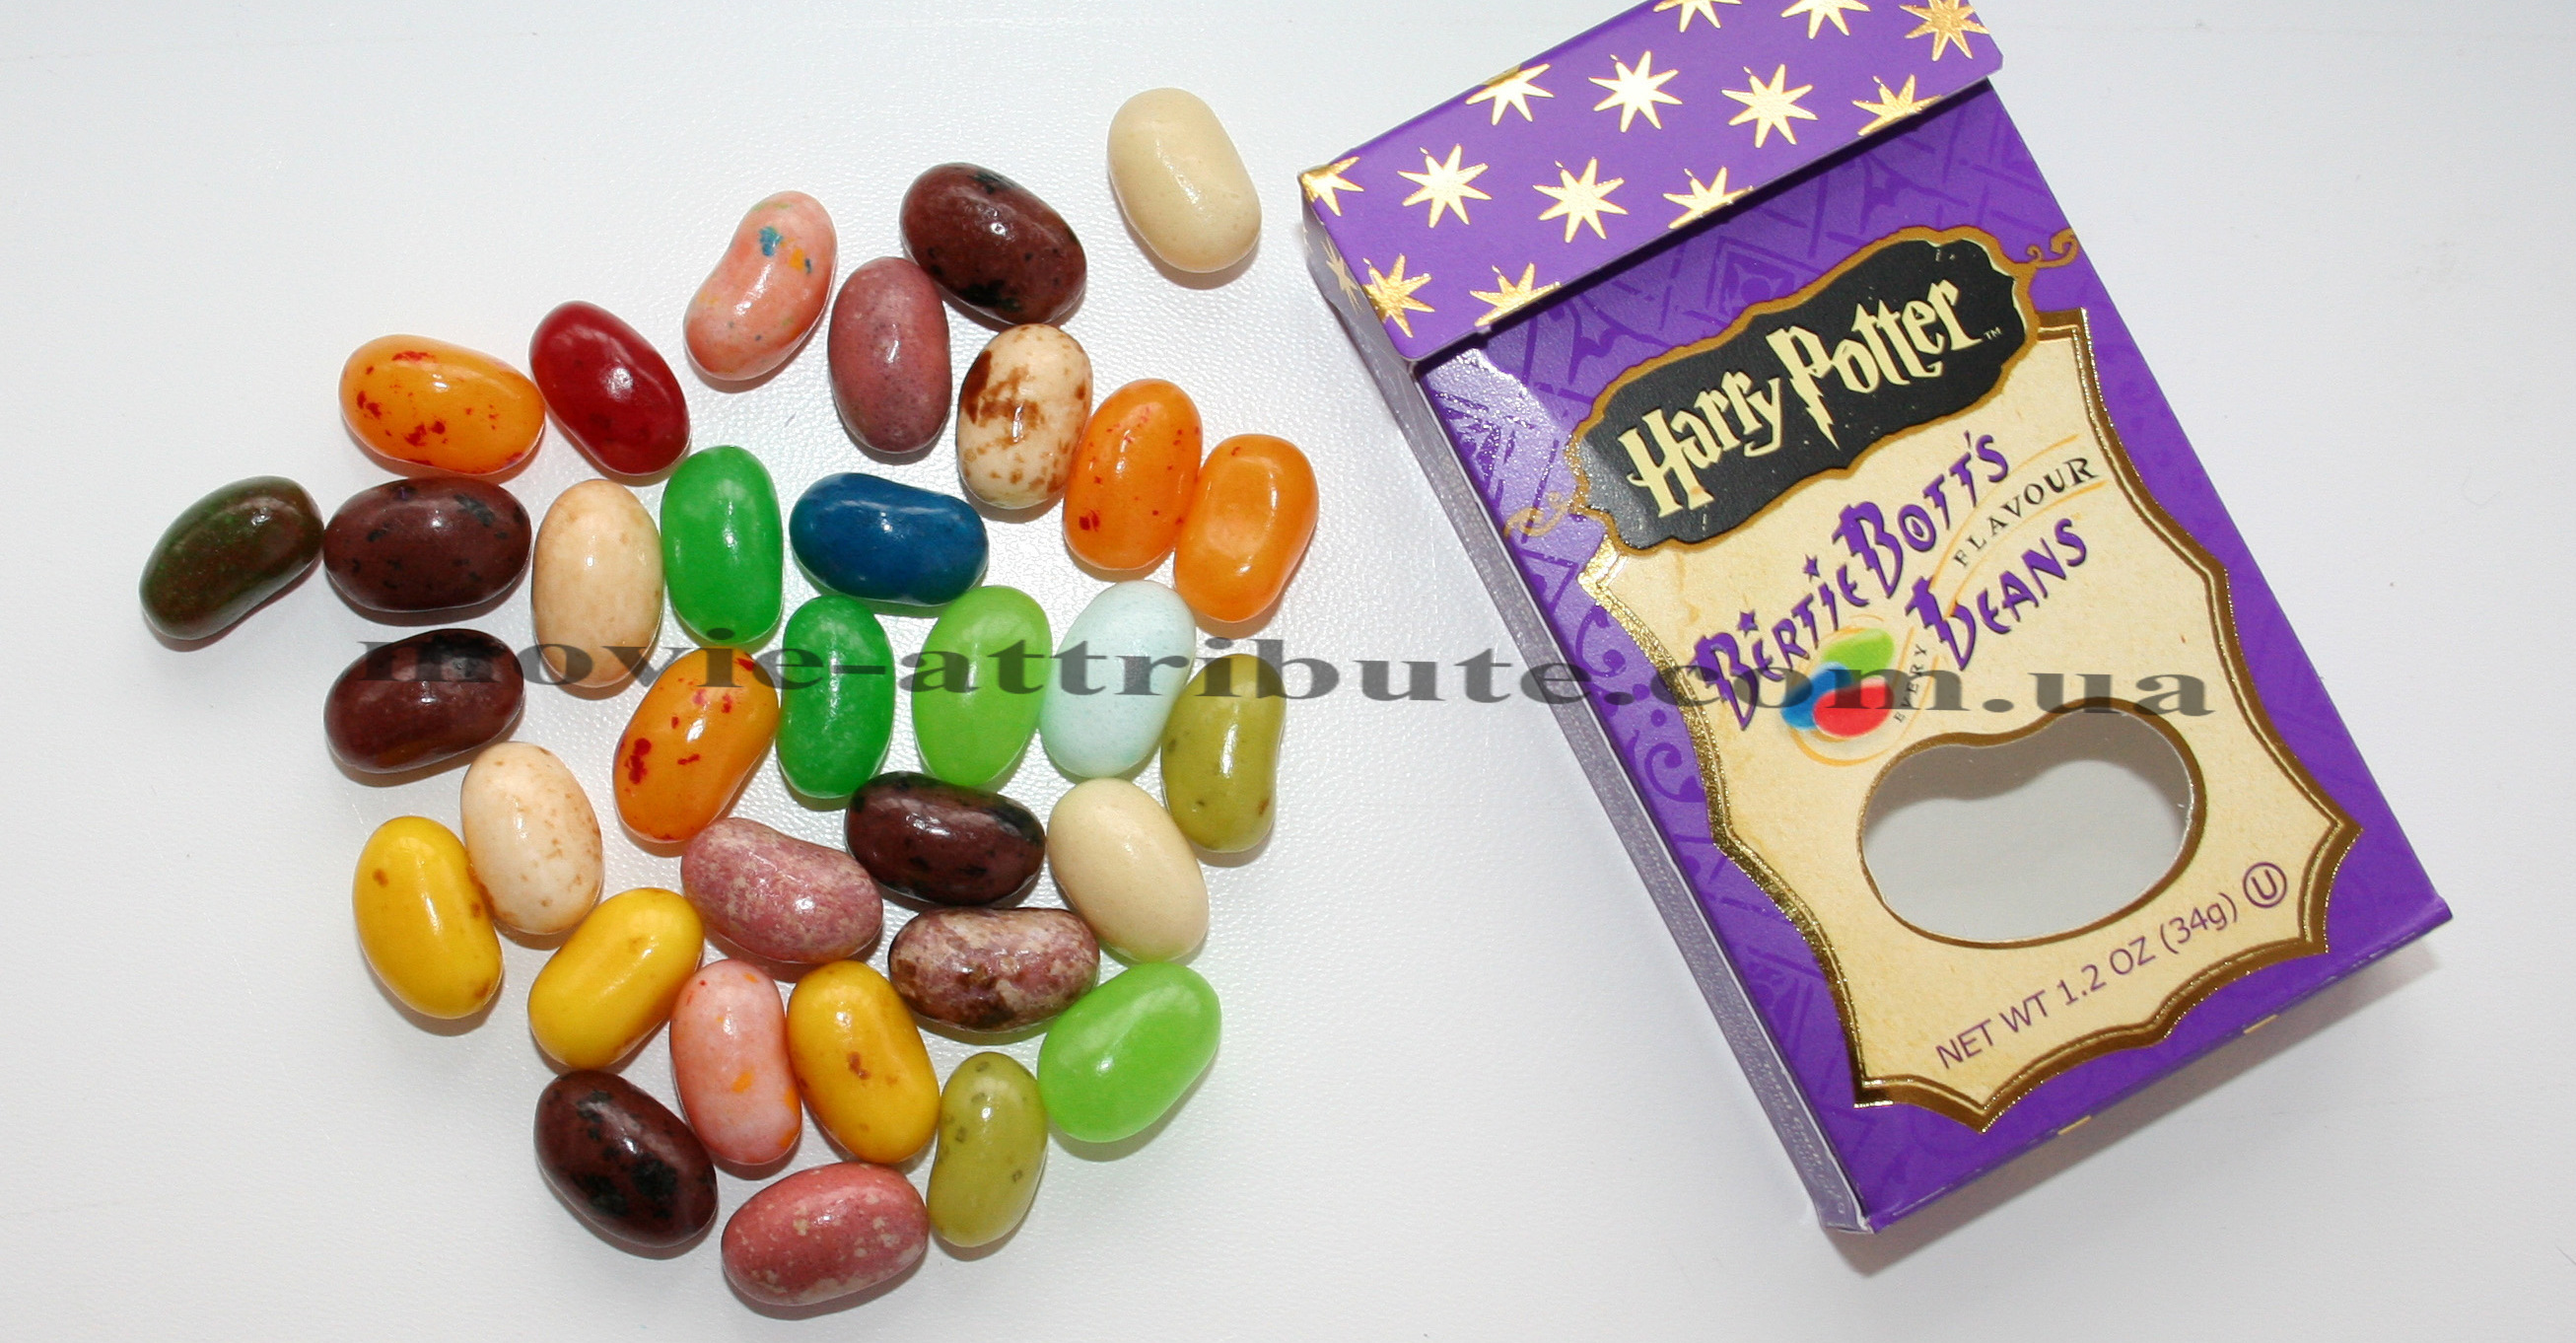 Берти Боттс Bertie Botts Украина